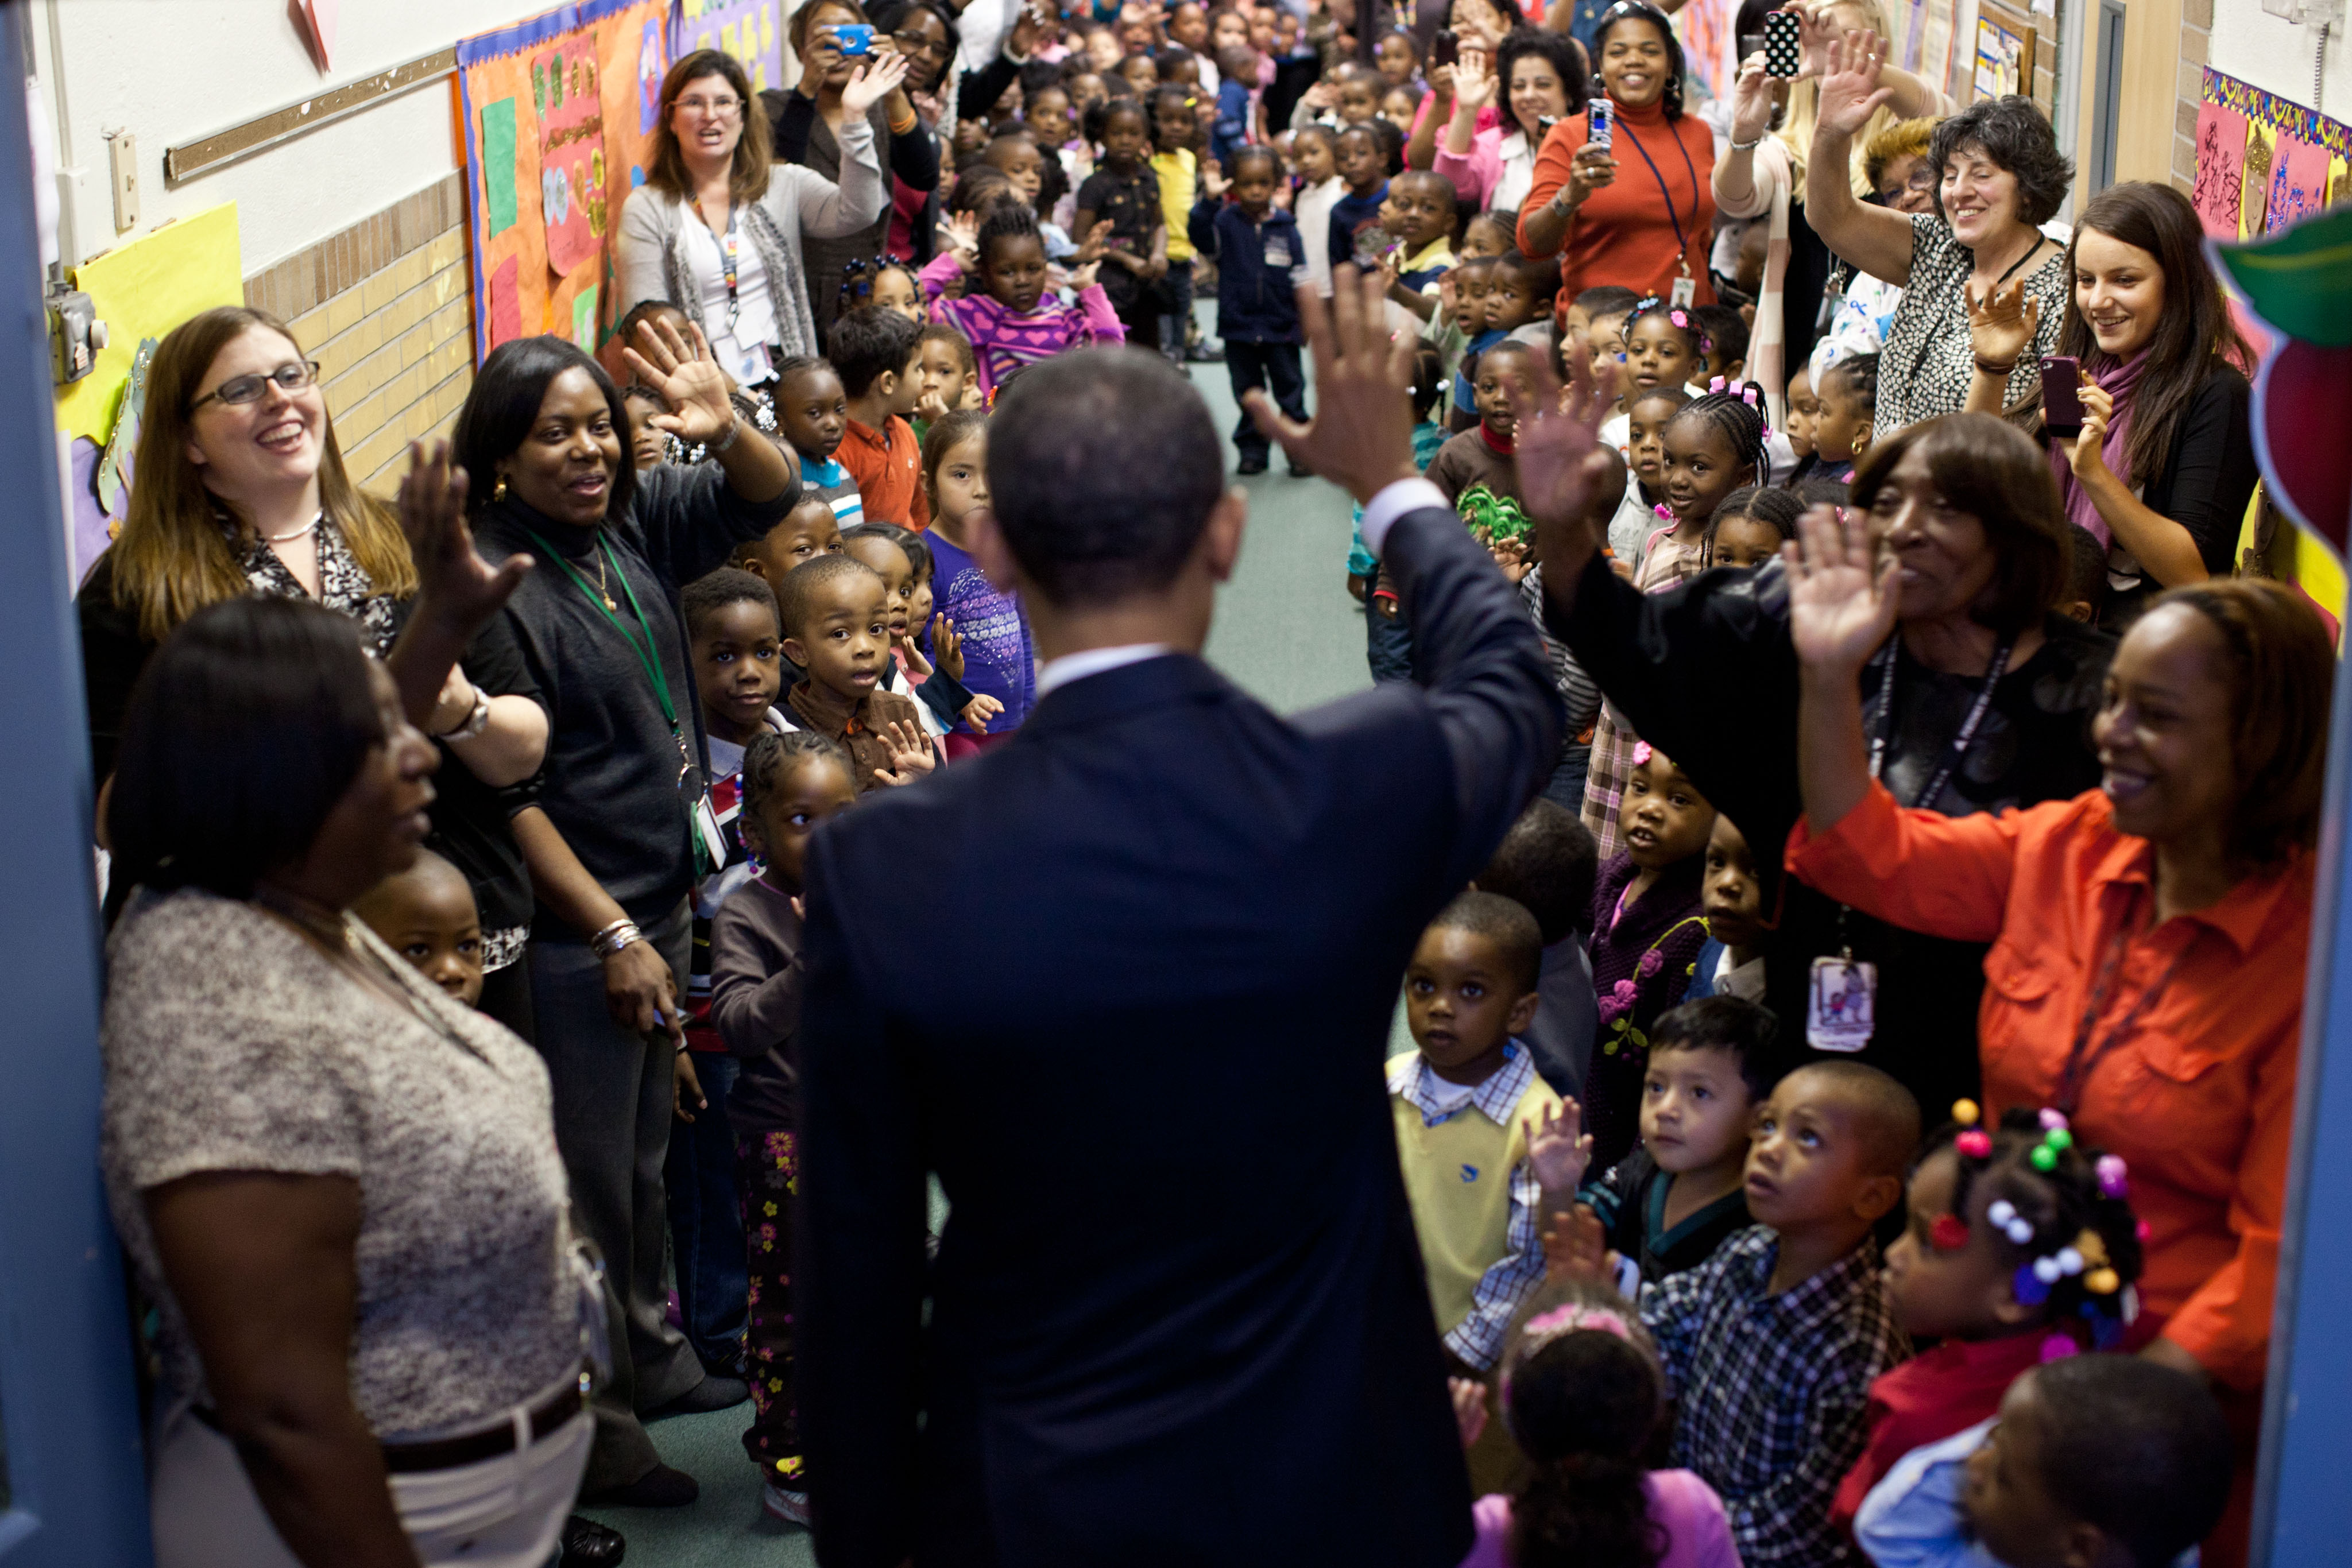 President Obama says goodbye to students after a visit to the Yeadon Regional Head Start Center